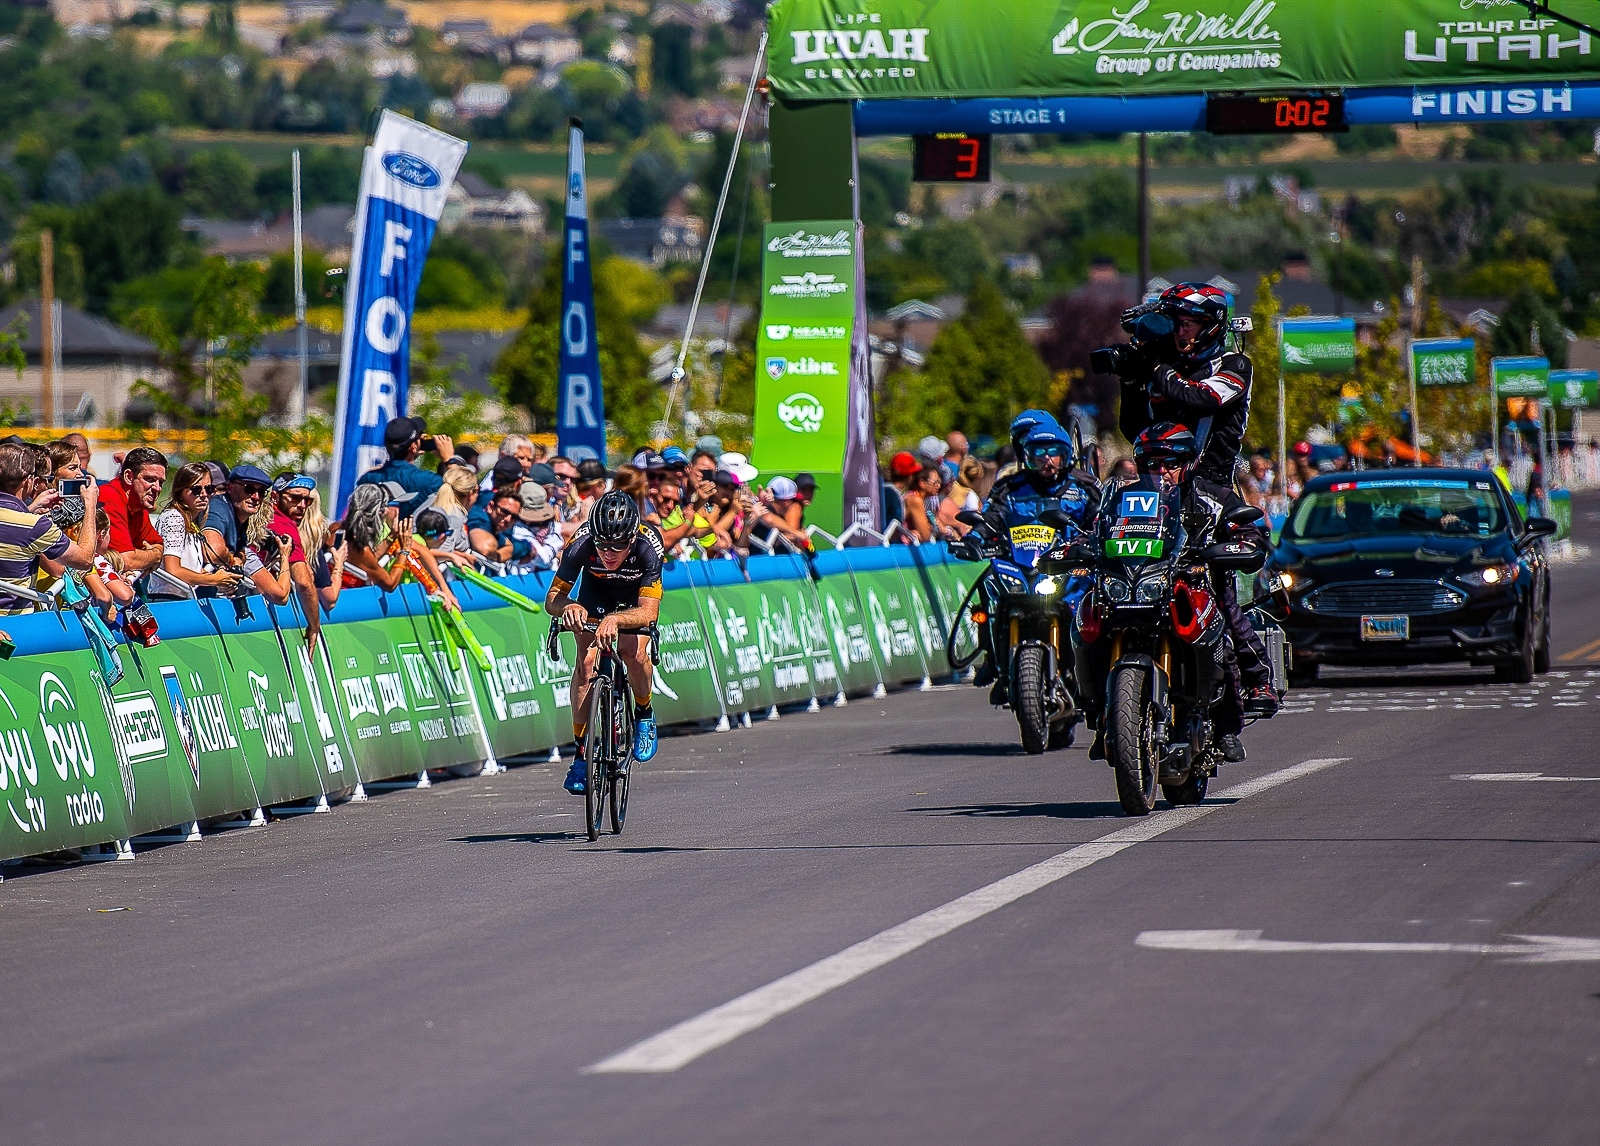 A DC Bank rider is solo off the front with 3 laps of the finishing circuit to go. Stage 1, 2019 Tour of Utah. Photo by Steven L. Sheffield